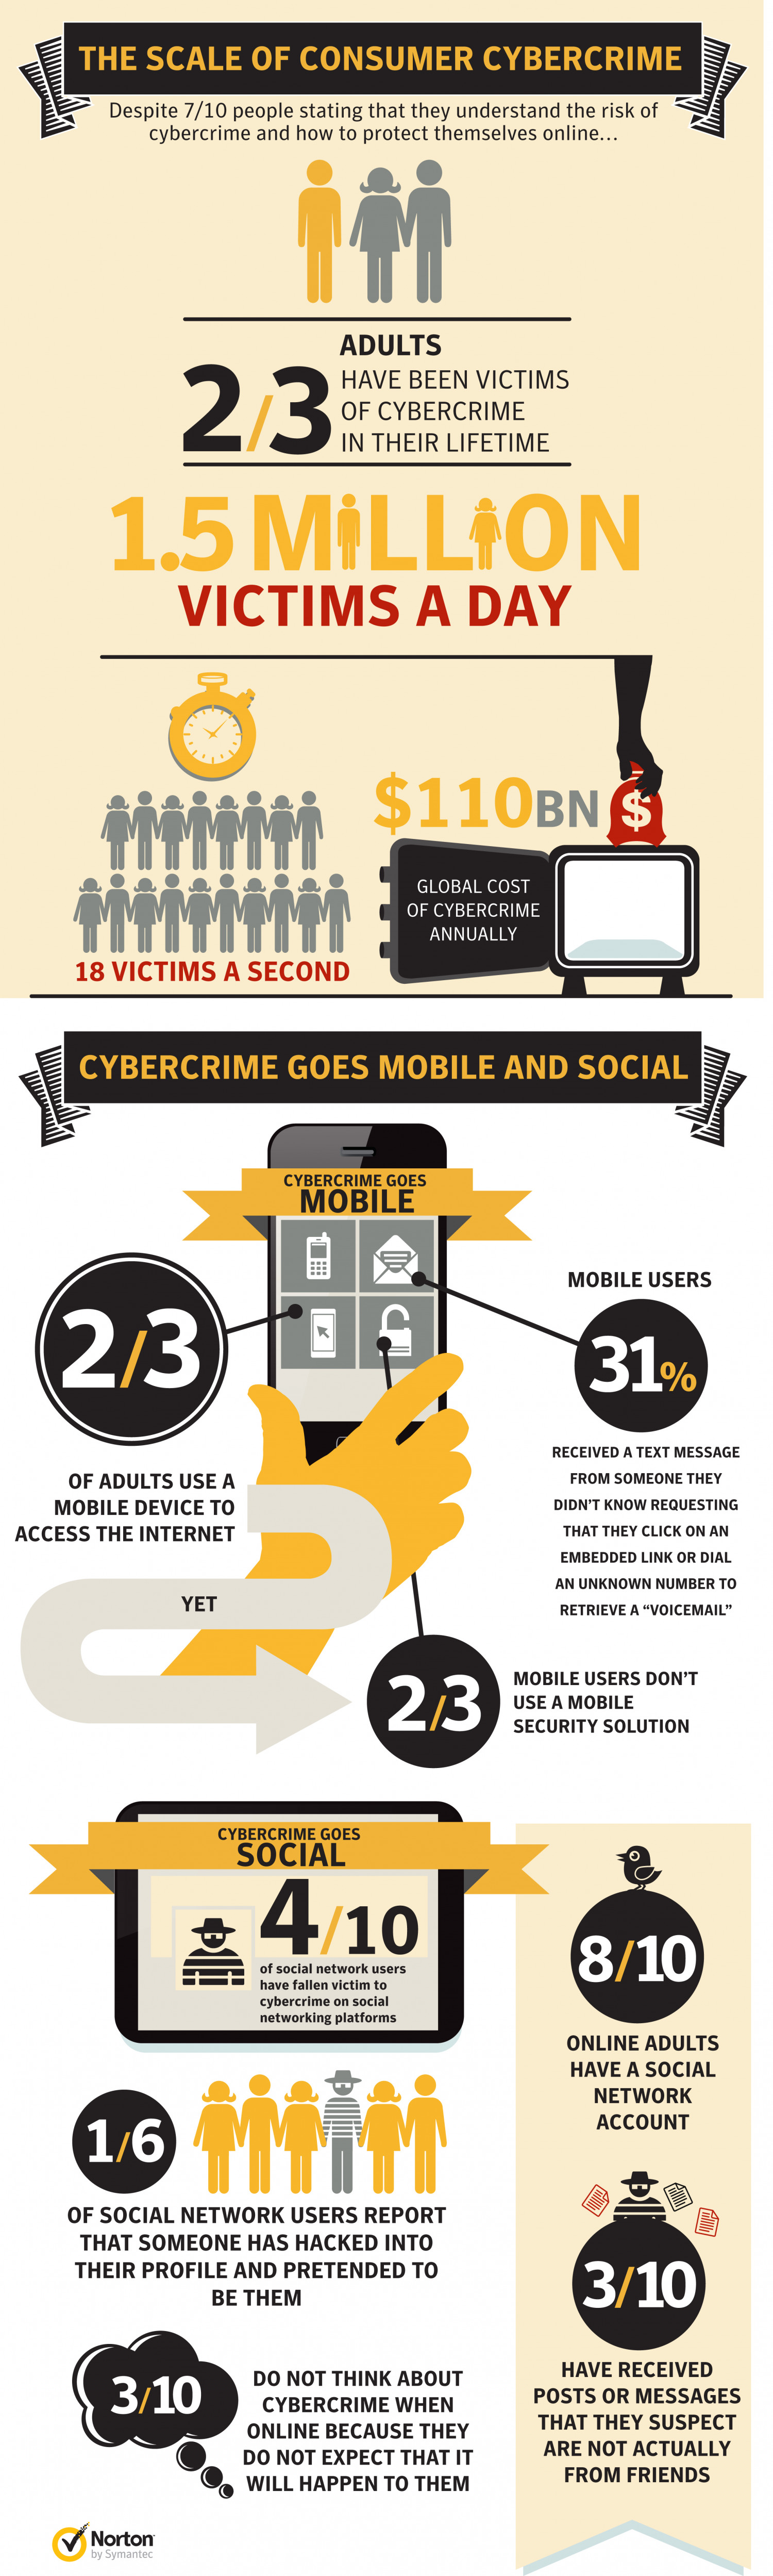 The Scale of Consumer Cybercrime Infographic